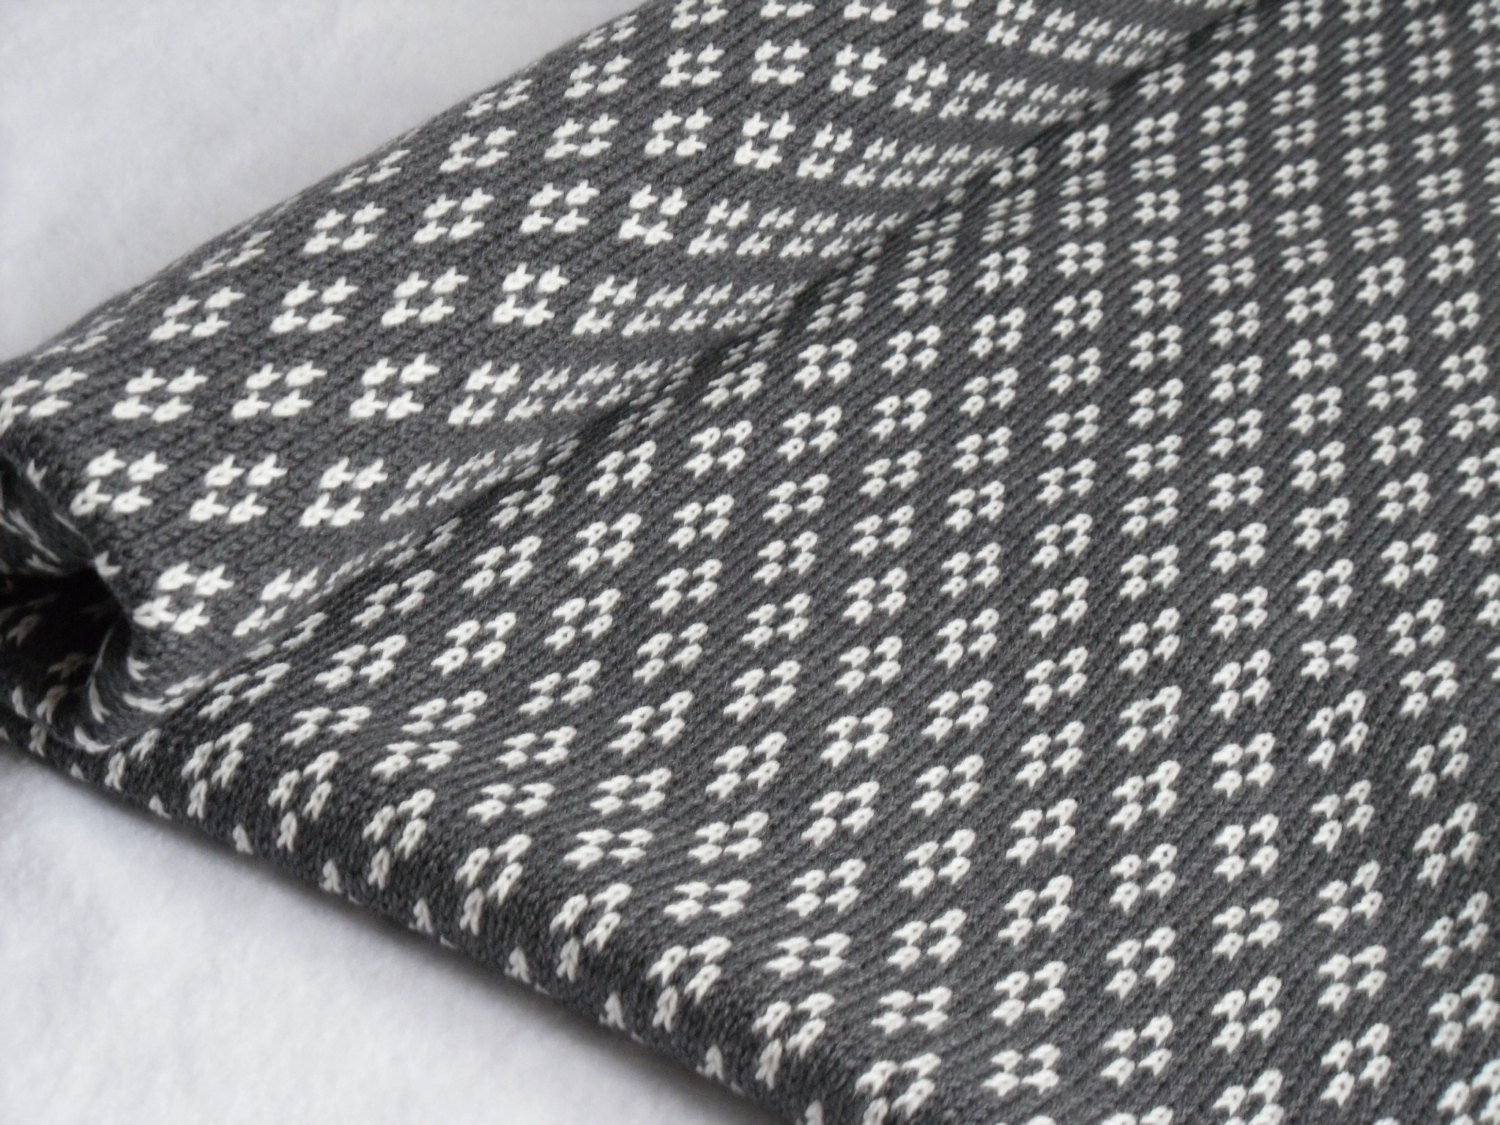 Knitted Baskets Free Patterns : Cot knitted Blanket/ Grey & Cream Blanket/ Fair Isle knit/